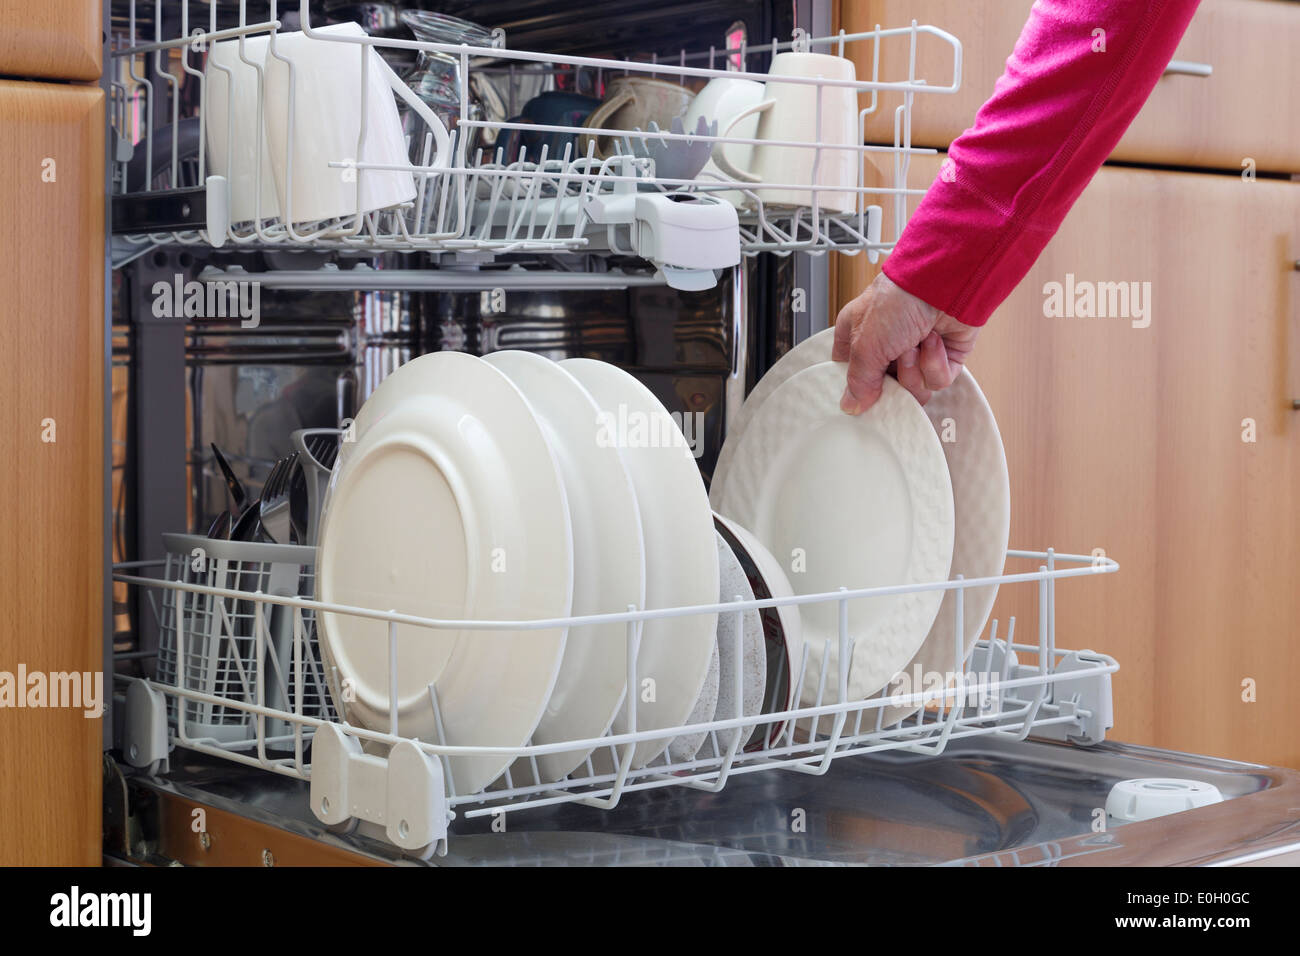 Everyday daily scene of a woman emptying a fitted dishwasher full of clean washed dishes in a domestic kitchen at home UK, Britain - Stock Image